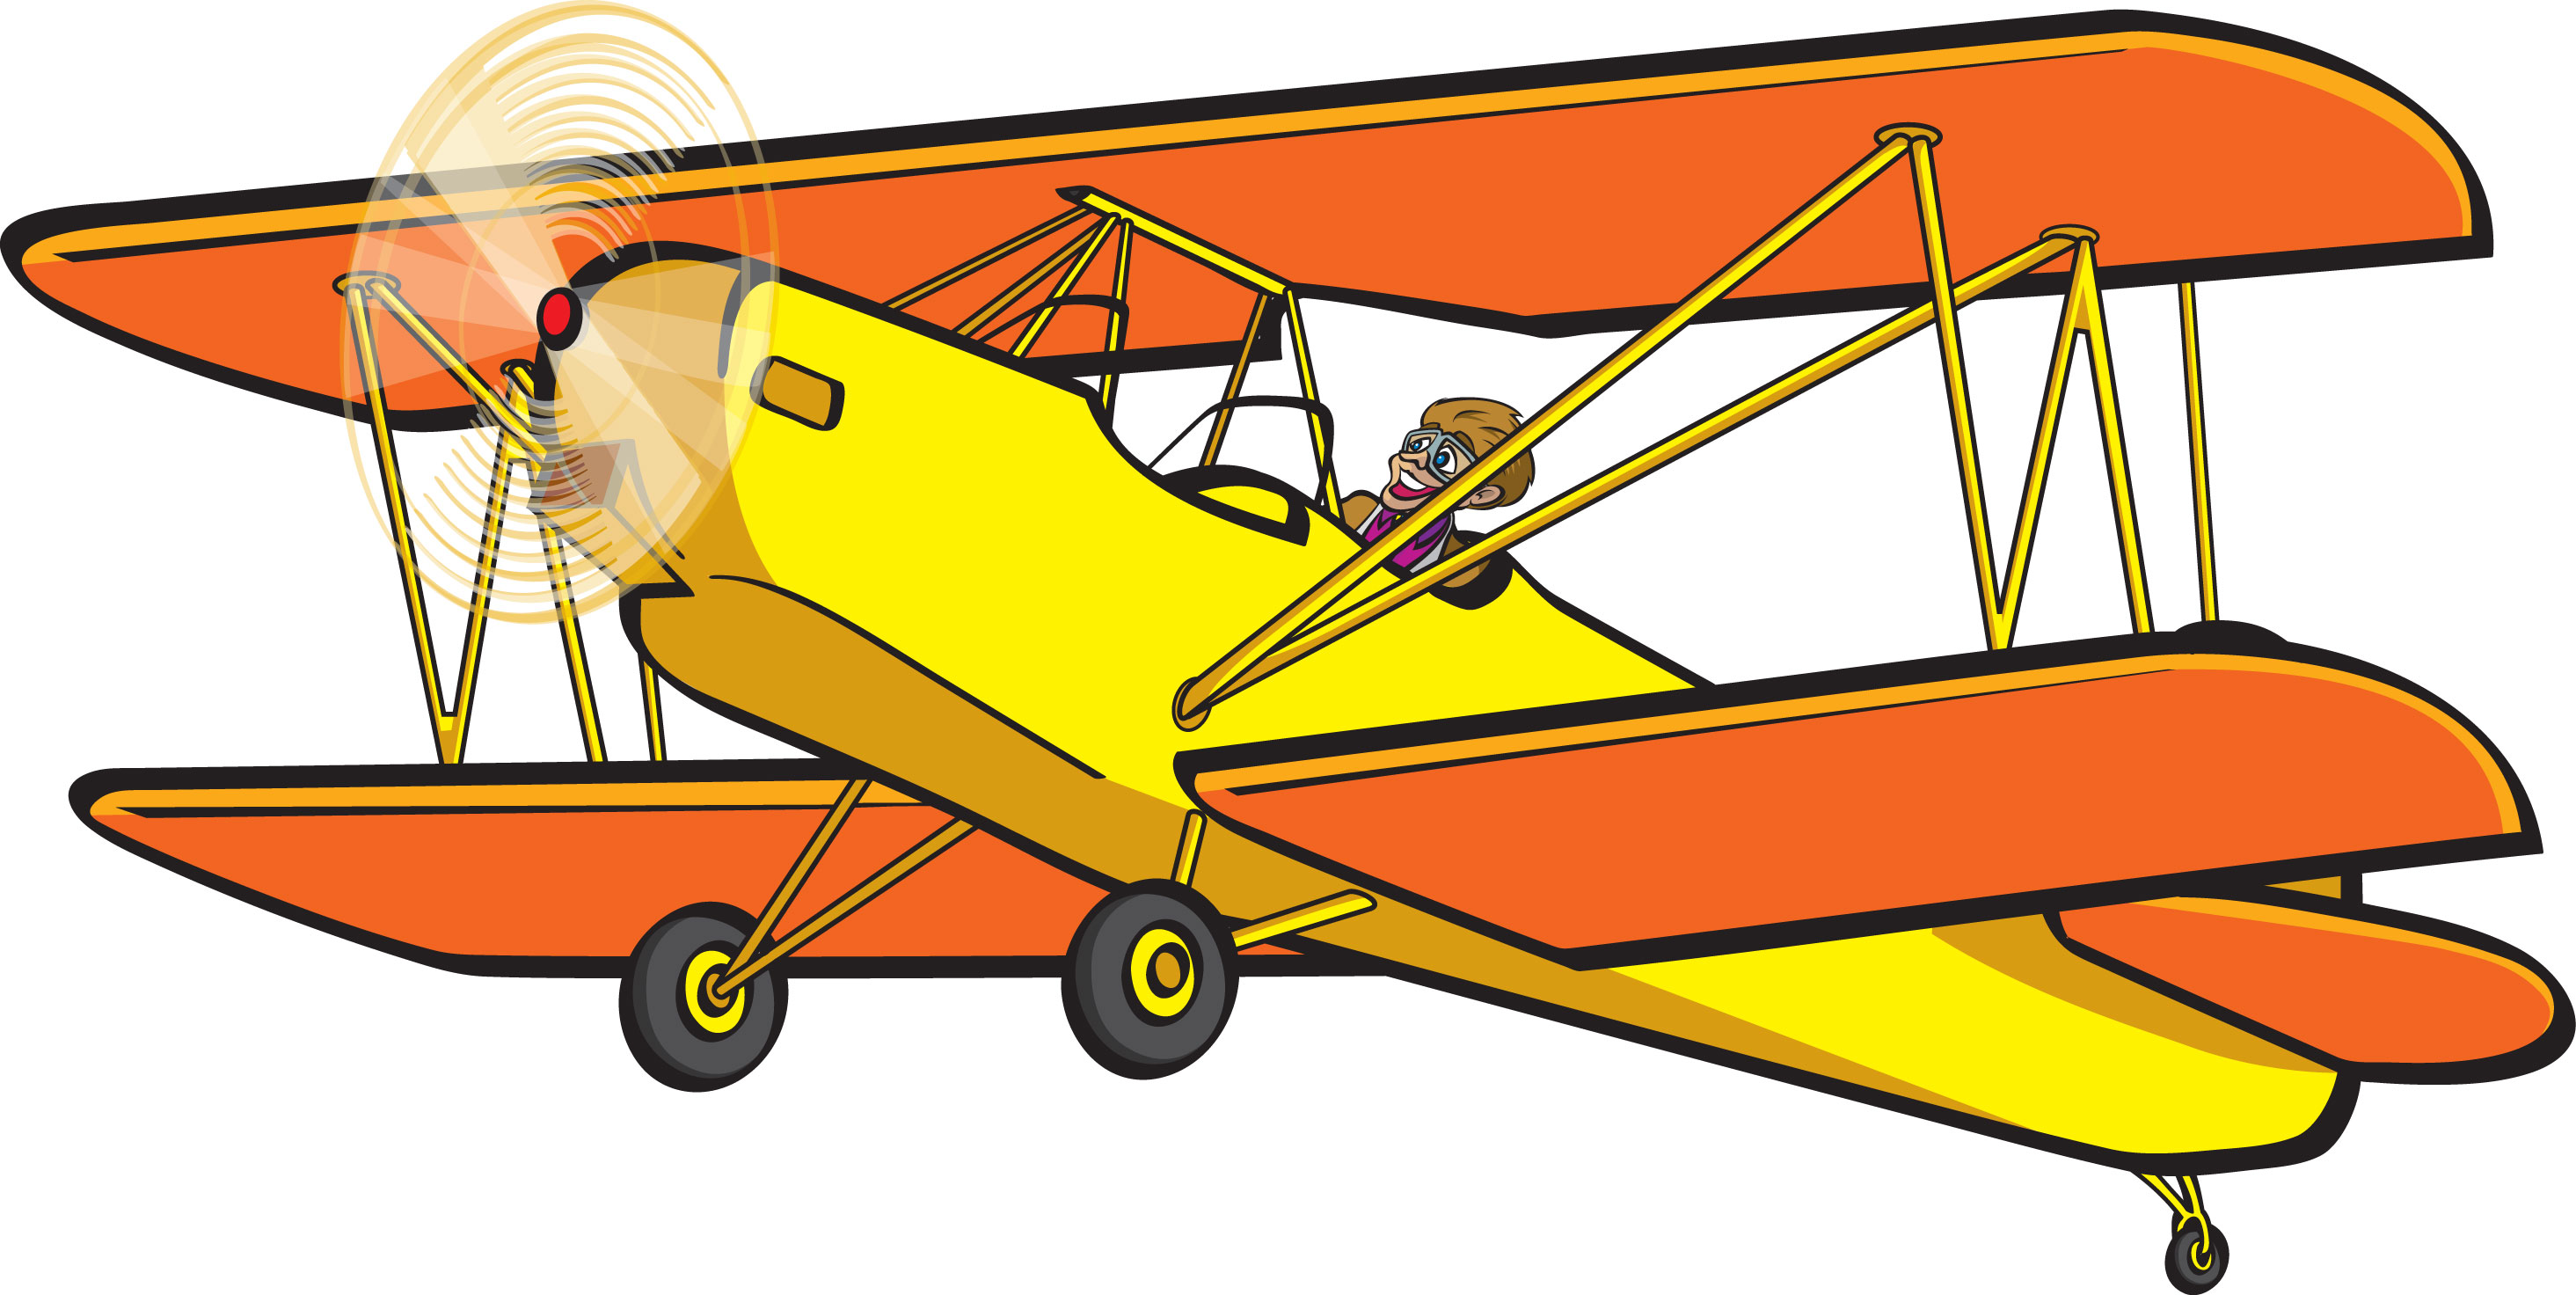 Image of Biplane Clipart Bipl - Biplane Clipart